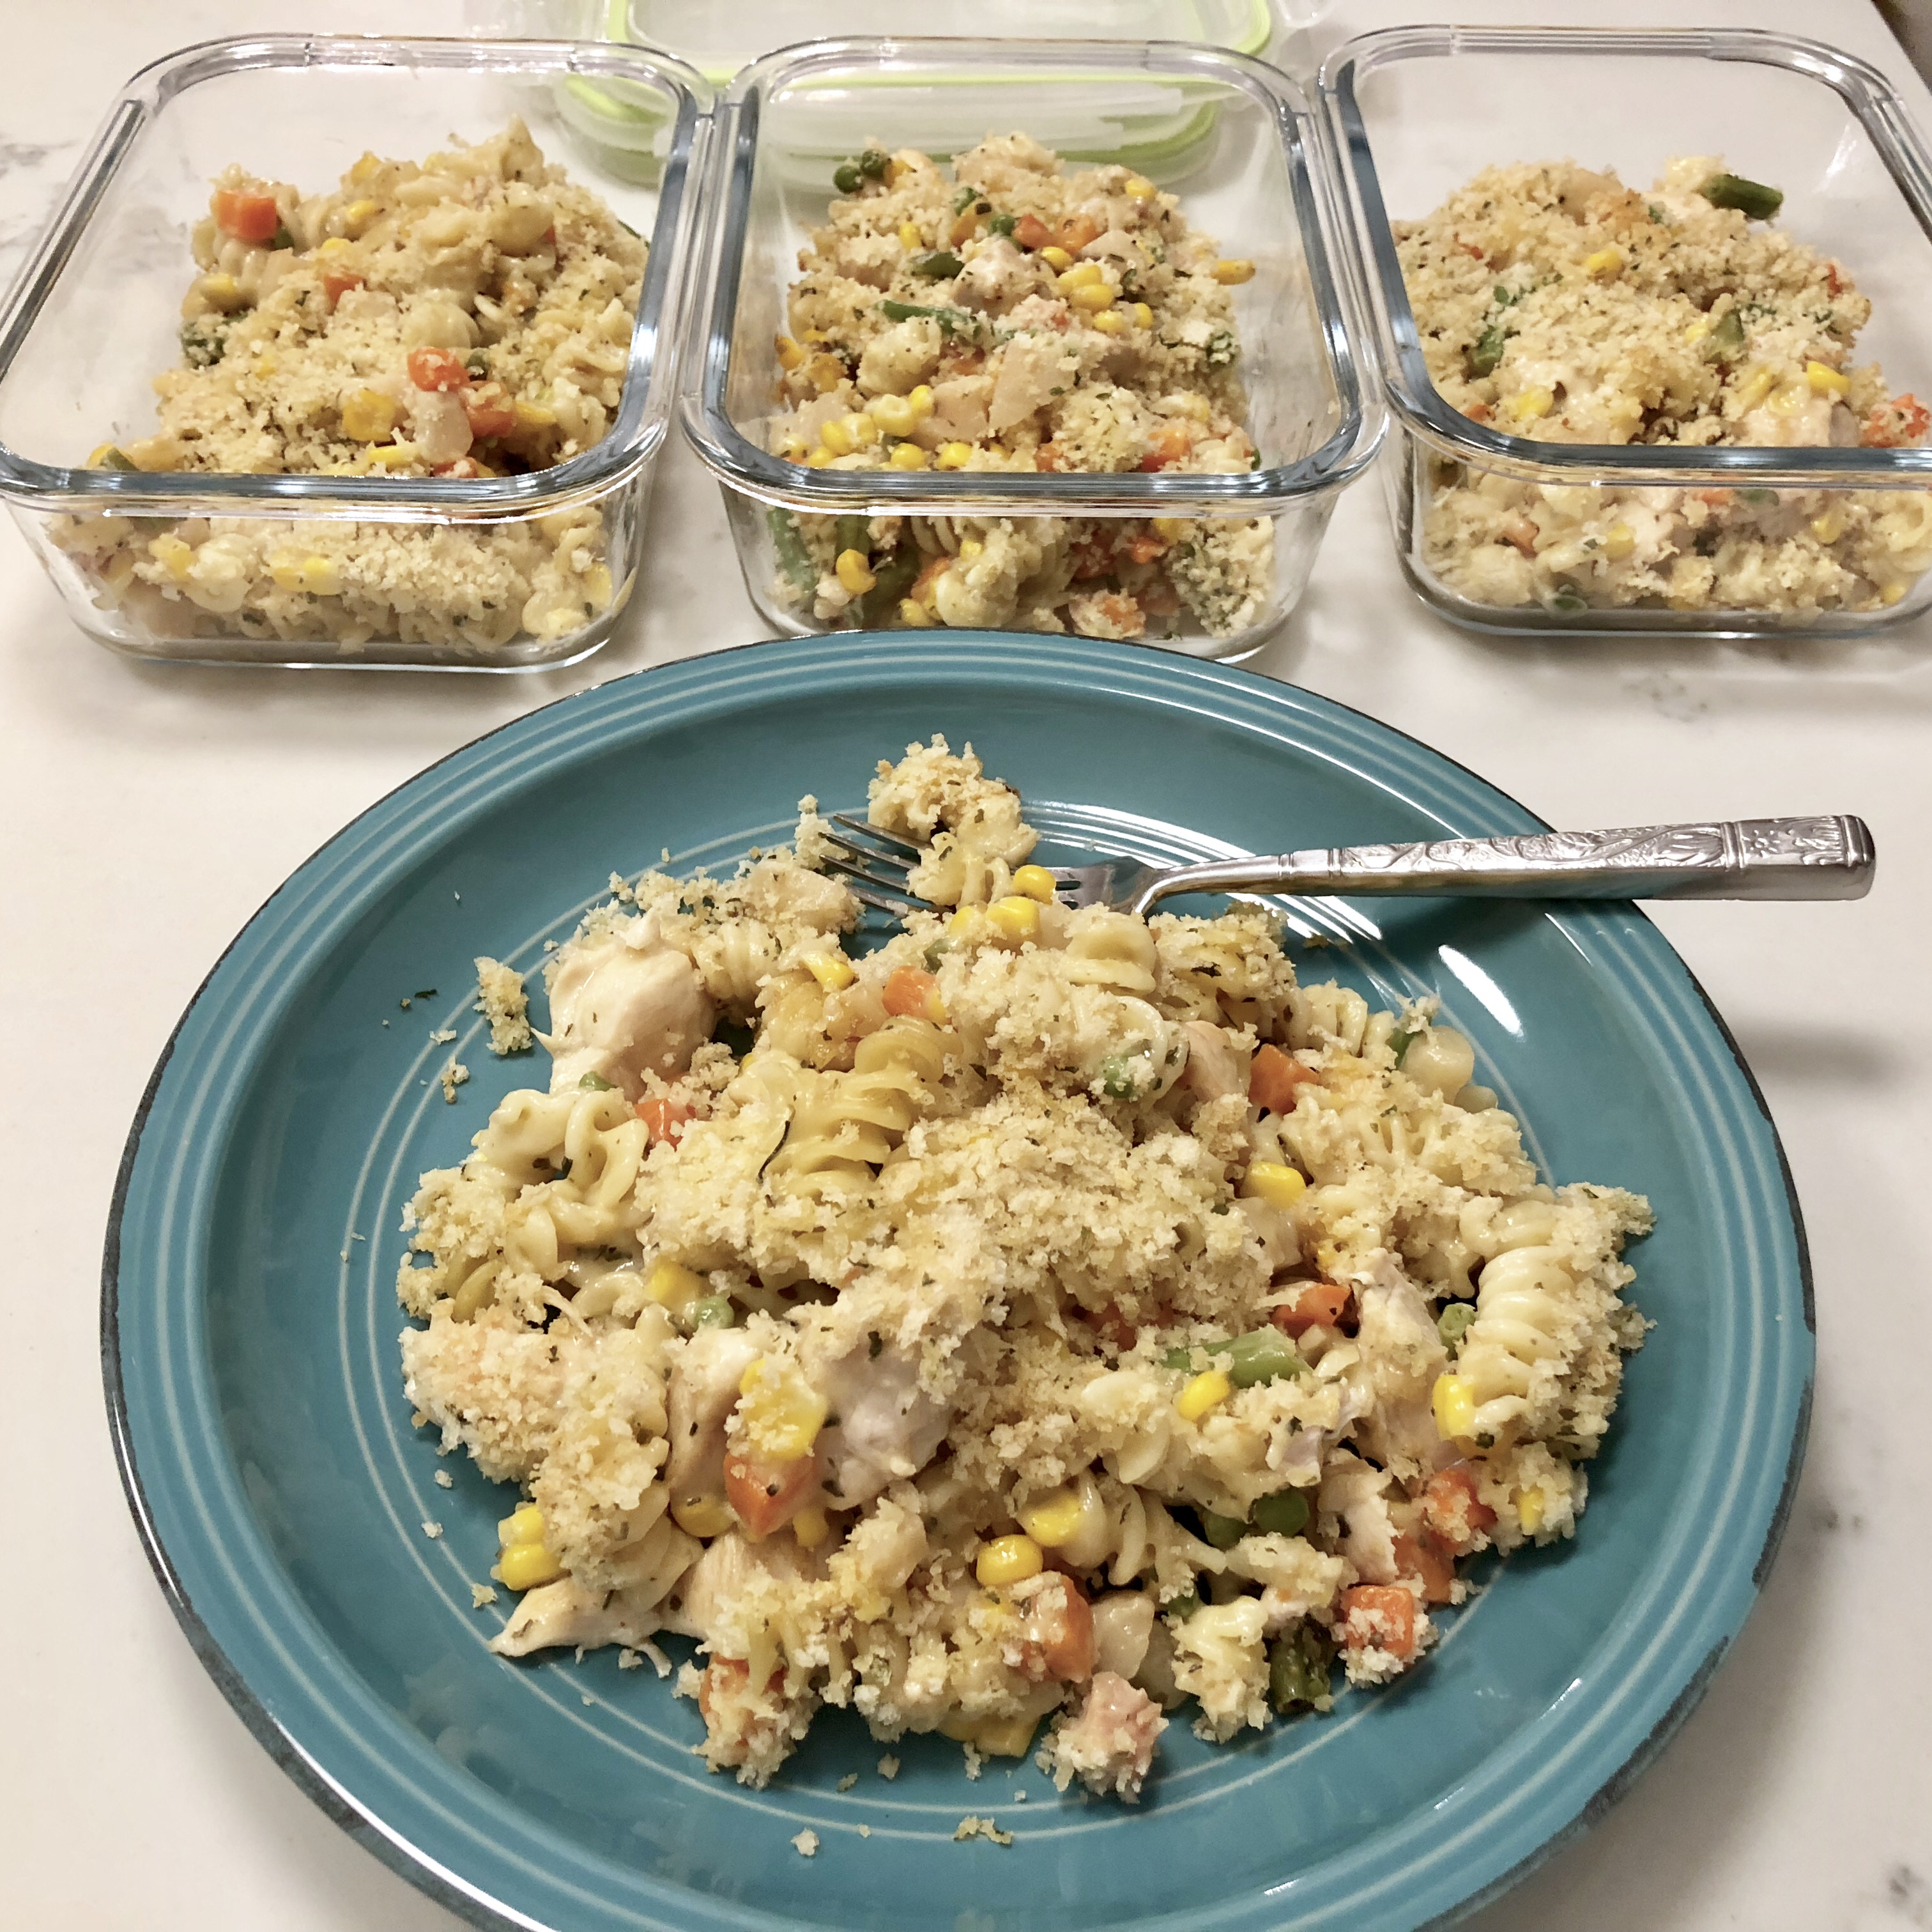 Chicken and Pasta Casserole with Mixed Vegetables Scruffy Paws